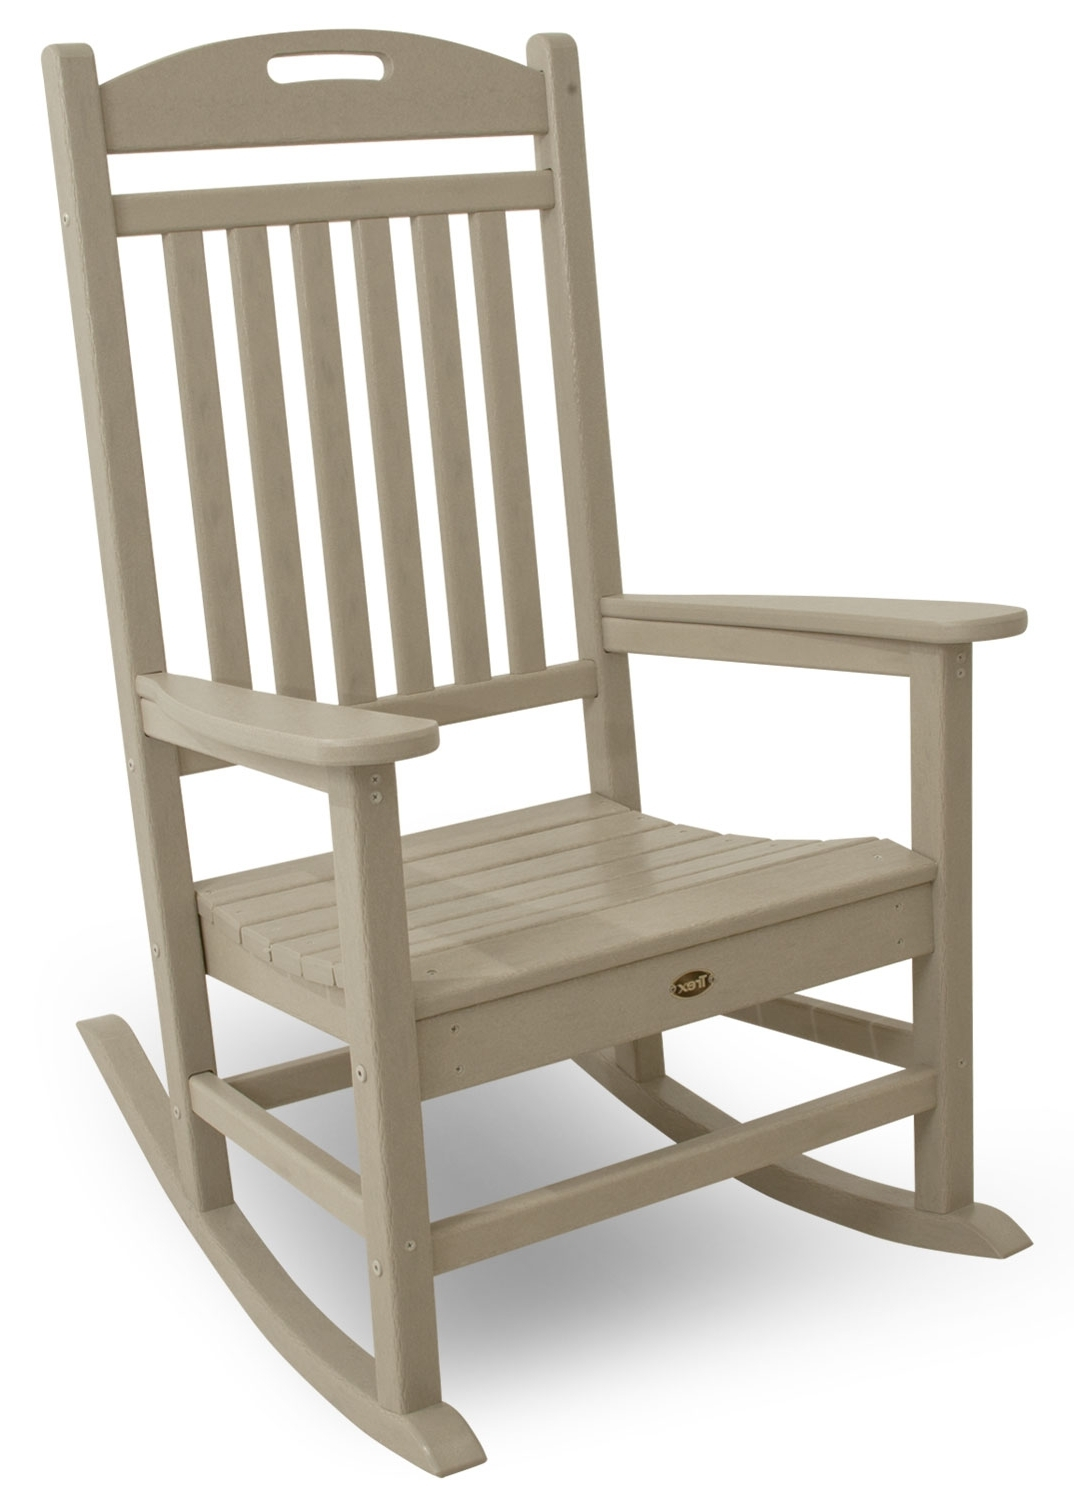 Most Popular Old Fashioned Rocking Chairs Intended For Yacht Club Rocking Chair (View 20 of 20)